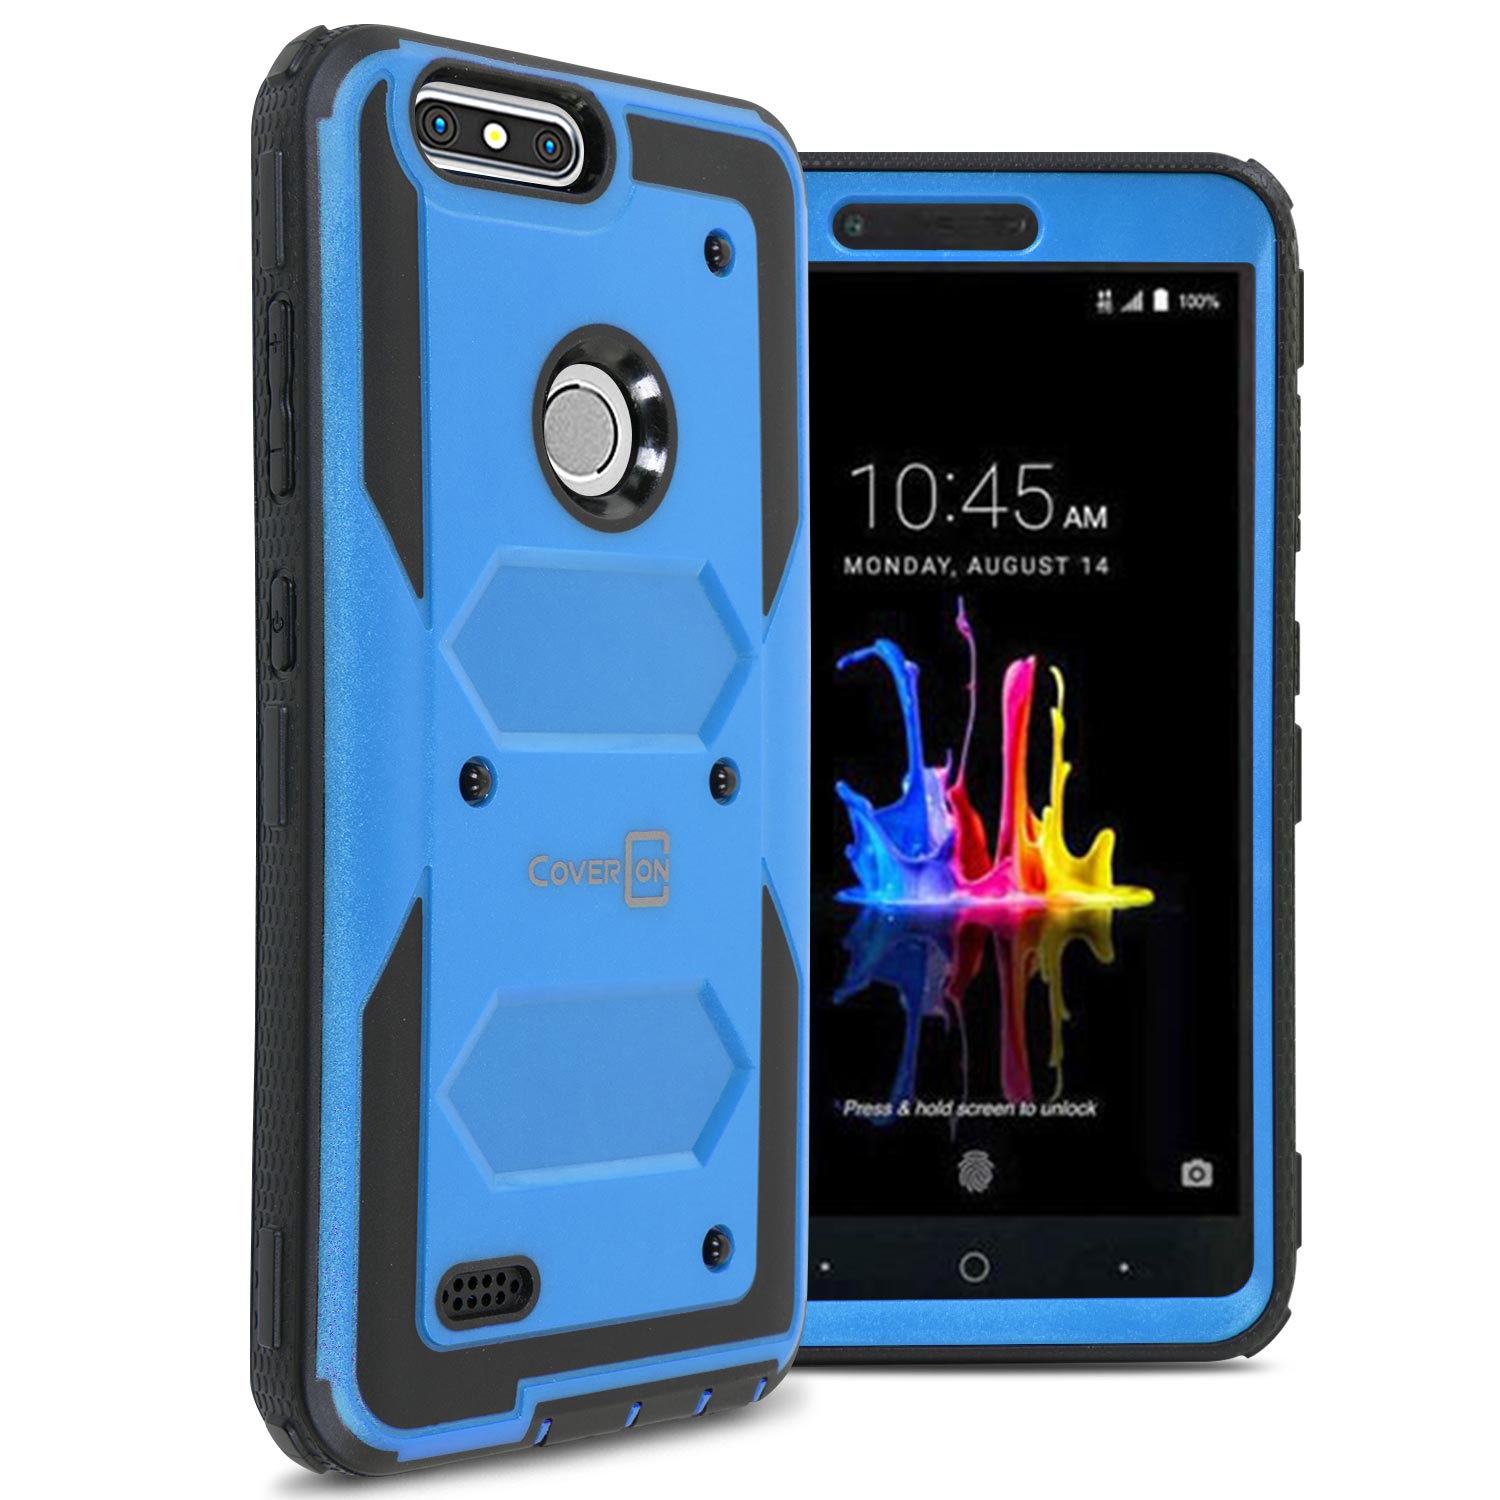 Details about Protective Hard Cover Case For ZTE ZMax Pro 2 / Sequoia /  Blade Z Max - Blue